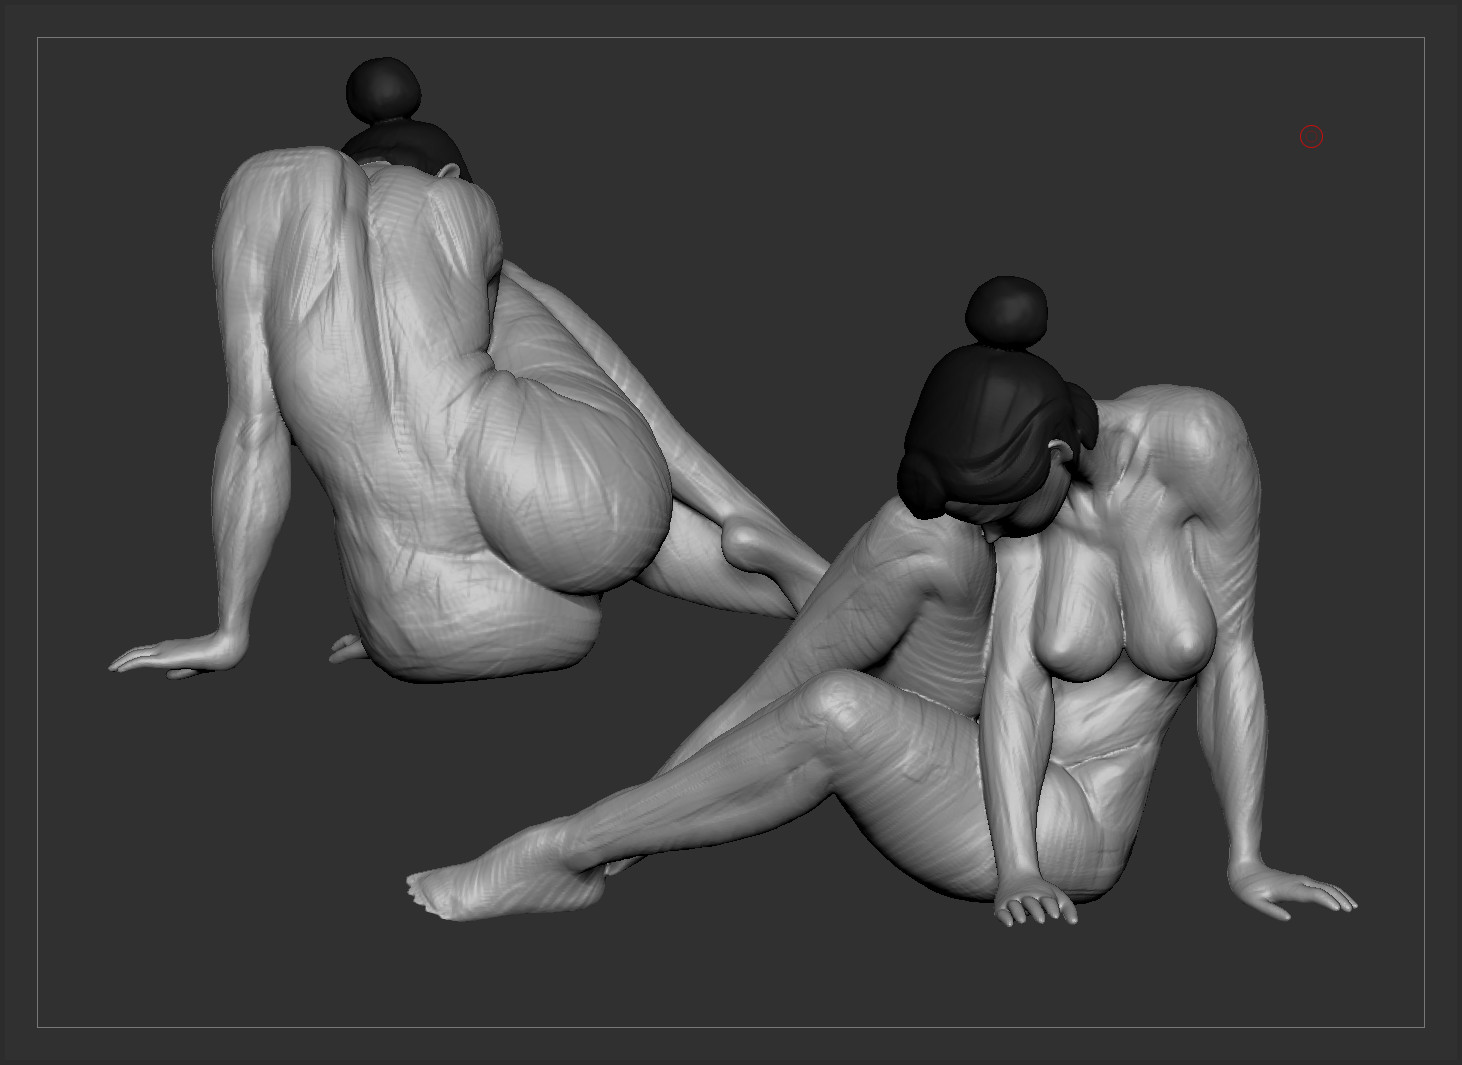 Mercurial forge mercurial forge zbrush 2018 03 31 03 38 43